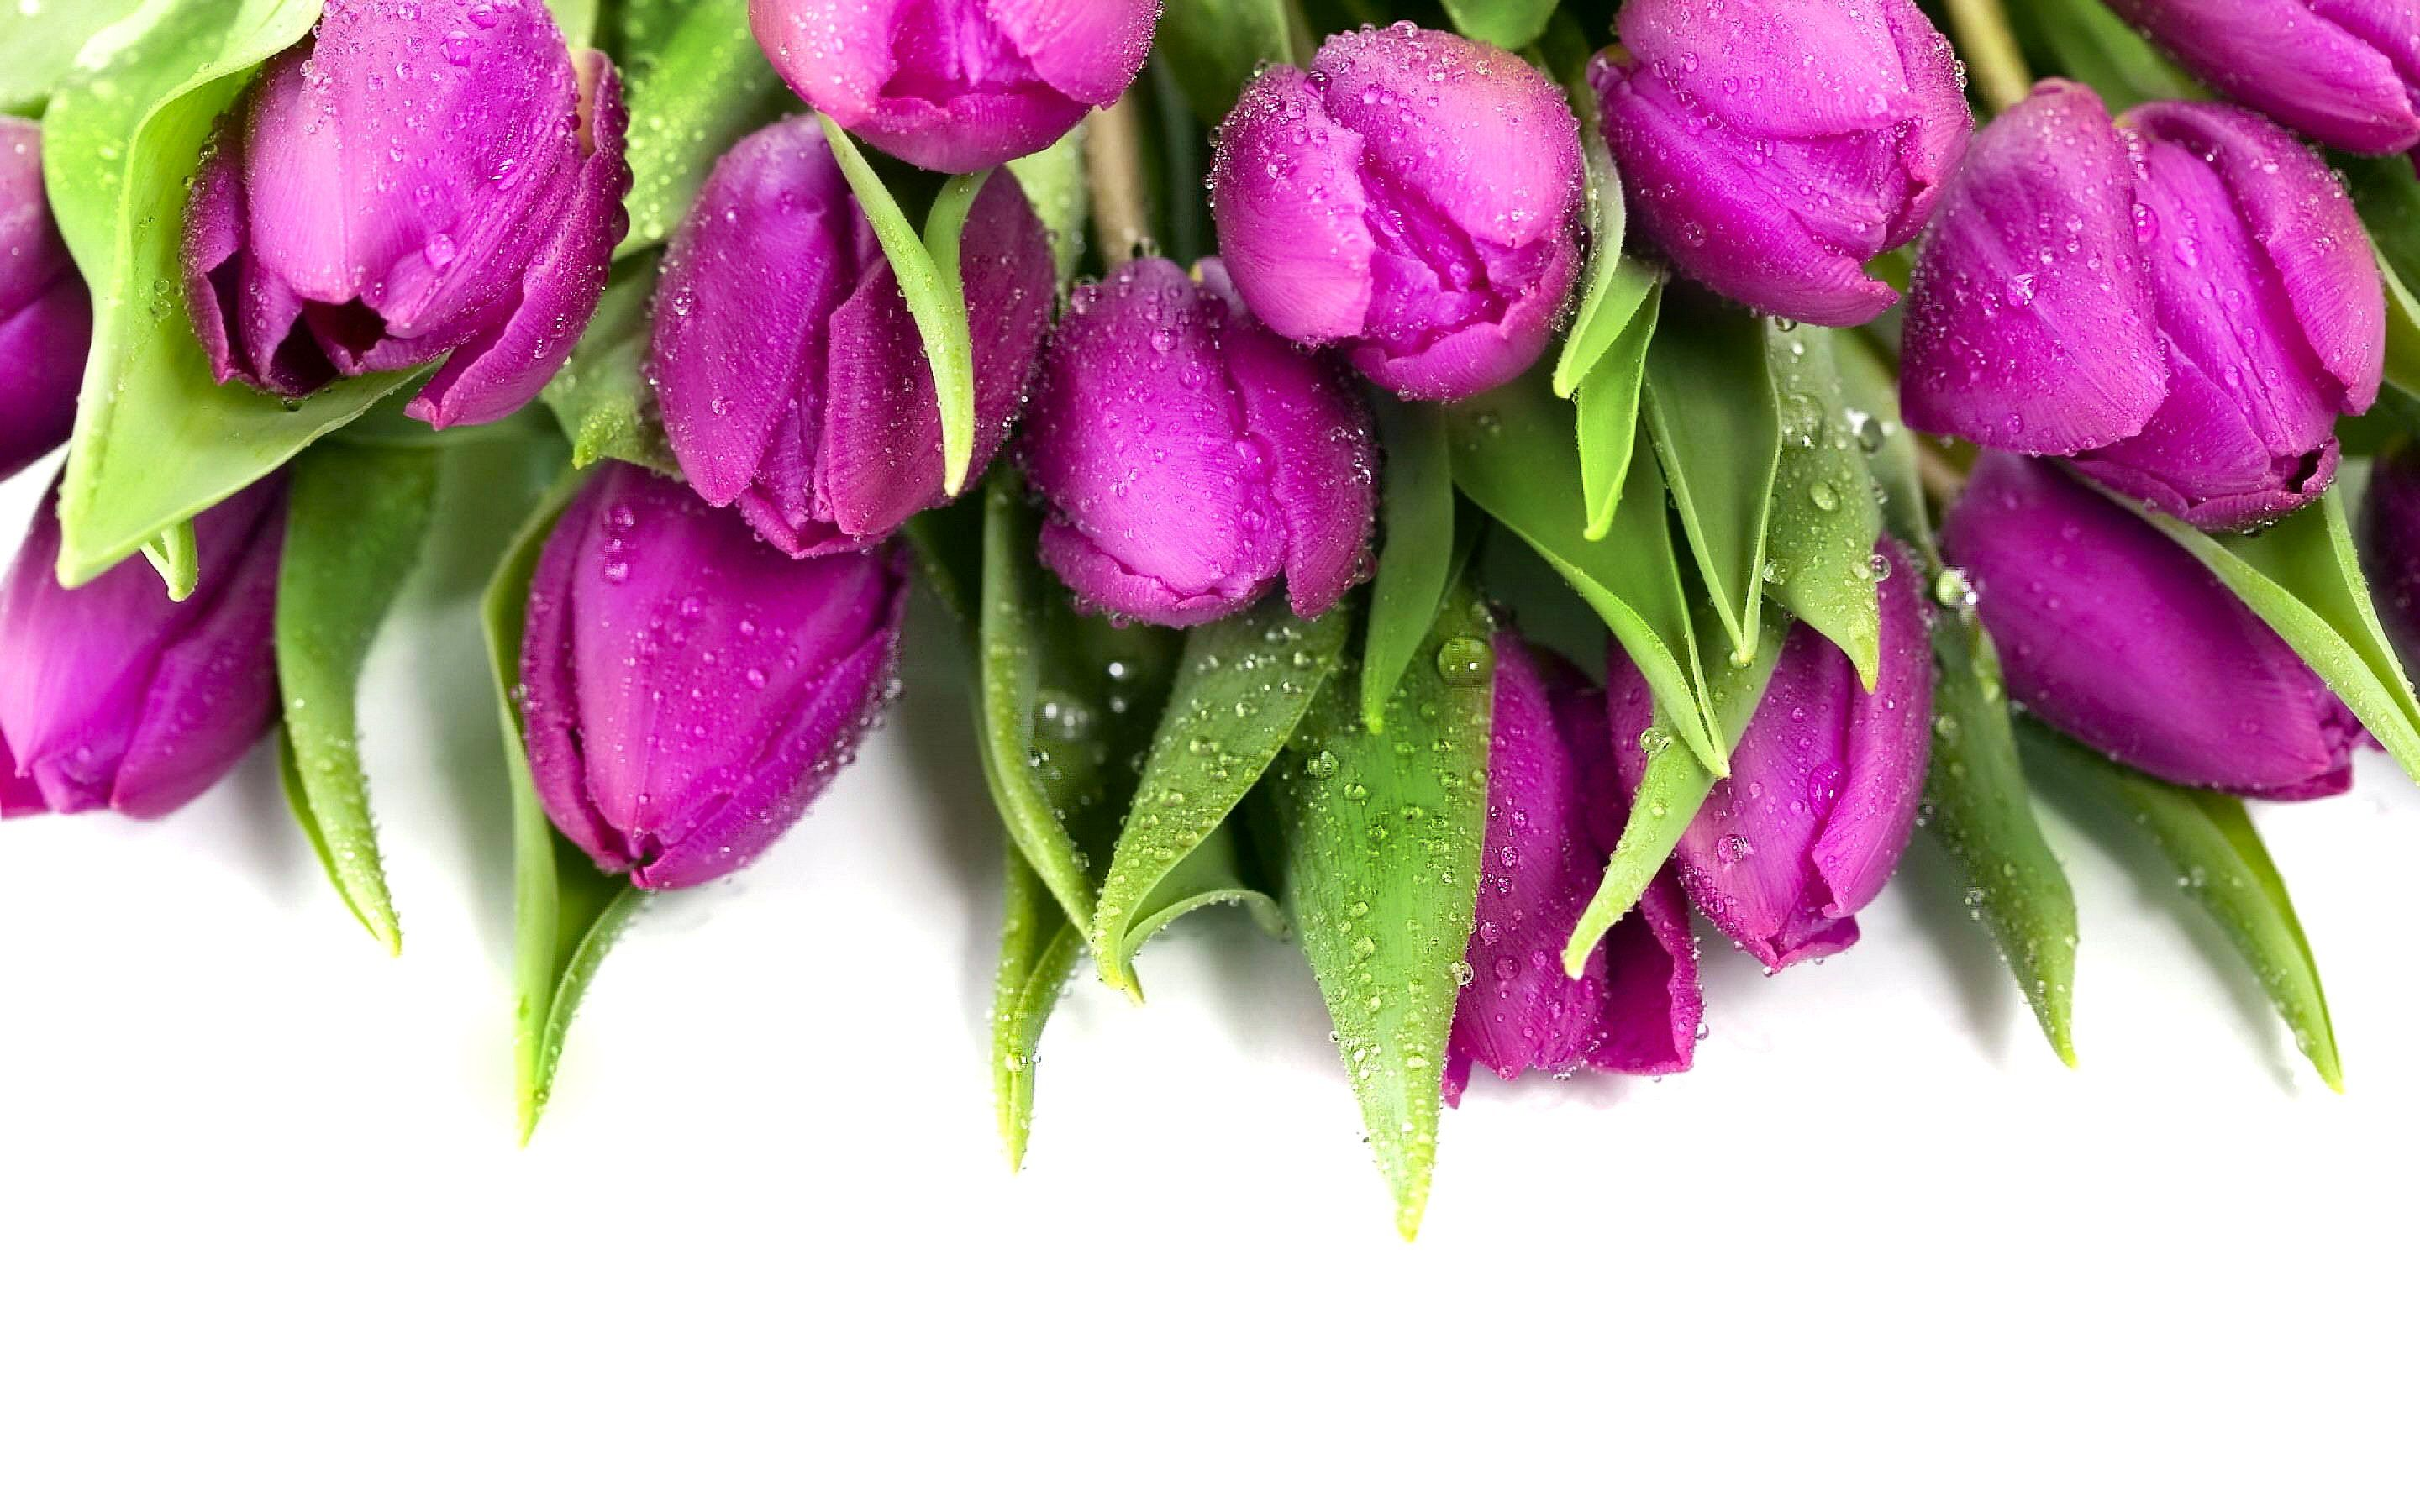 Tulip Wallpapers for Desktop  HD Wallpapers  Pinterest  Purple tulips, Pink wallpaper and 3d